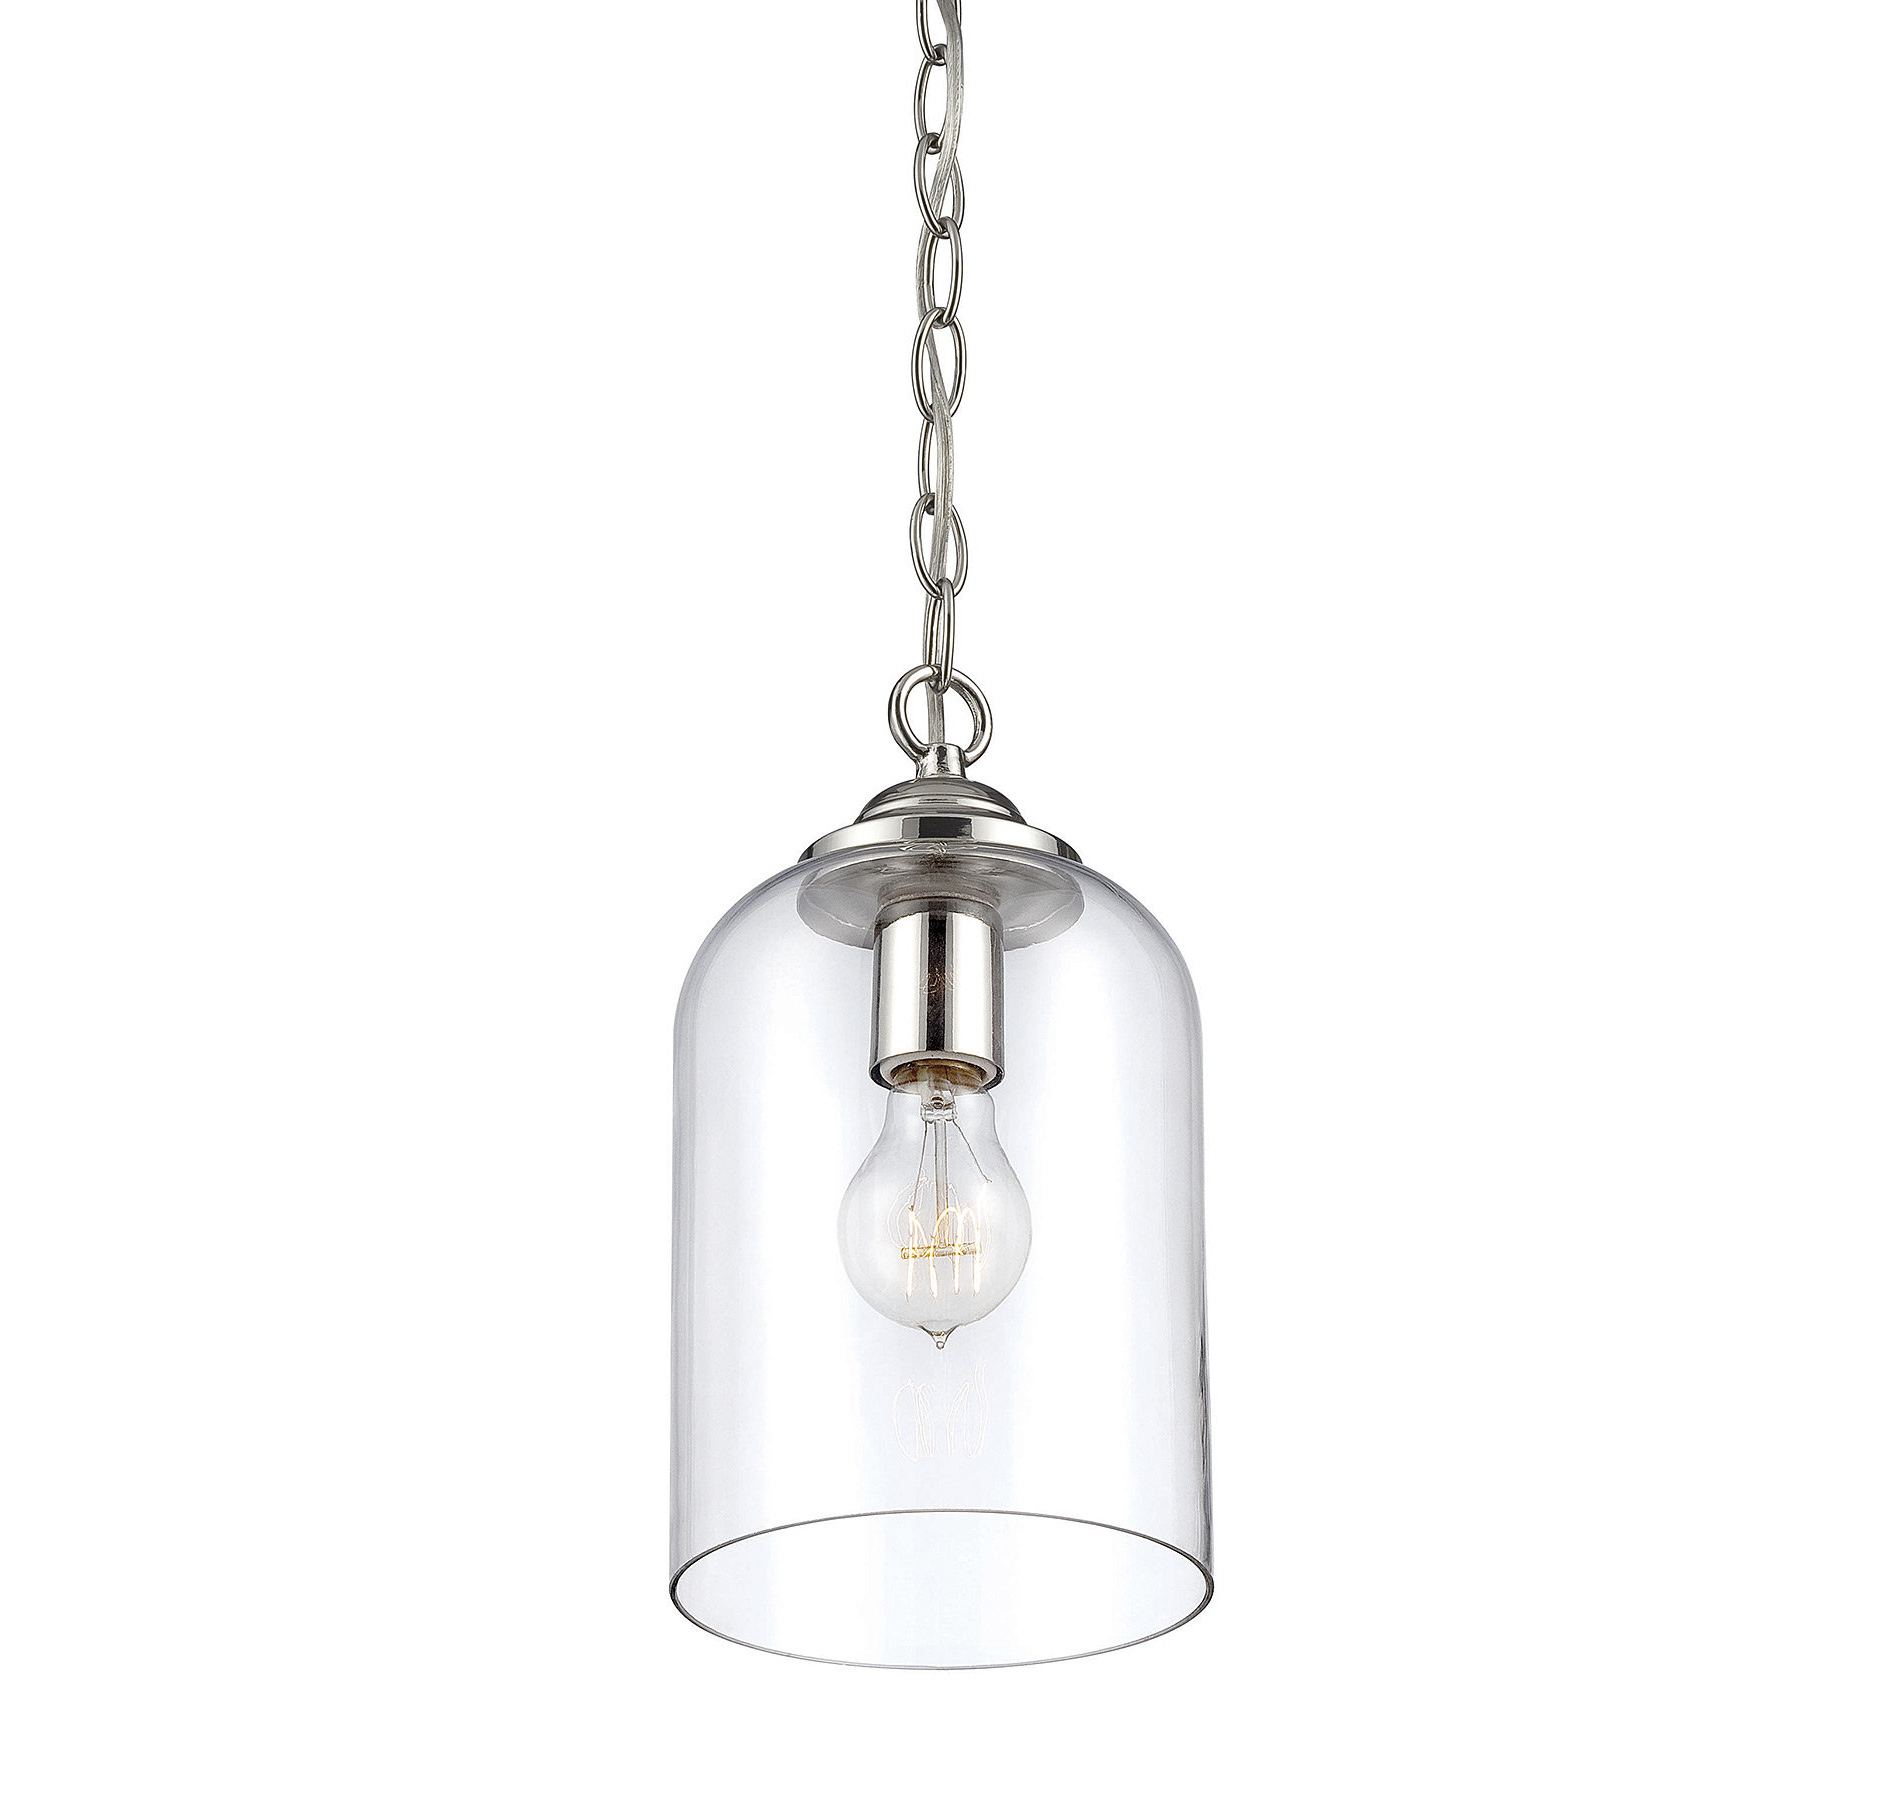 Silber 1 Light Single Bell Pendant Intended For Most Up To Date Goldie 1 Light Single Bell Pendants (View 9 of 20)